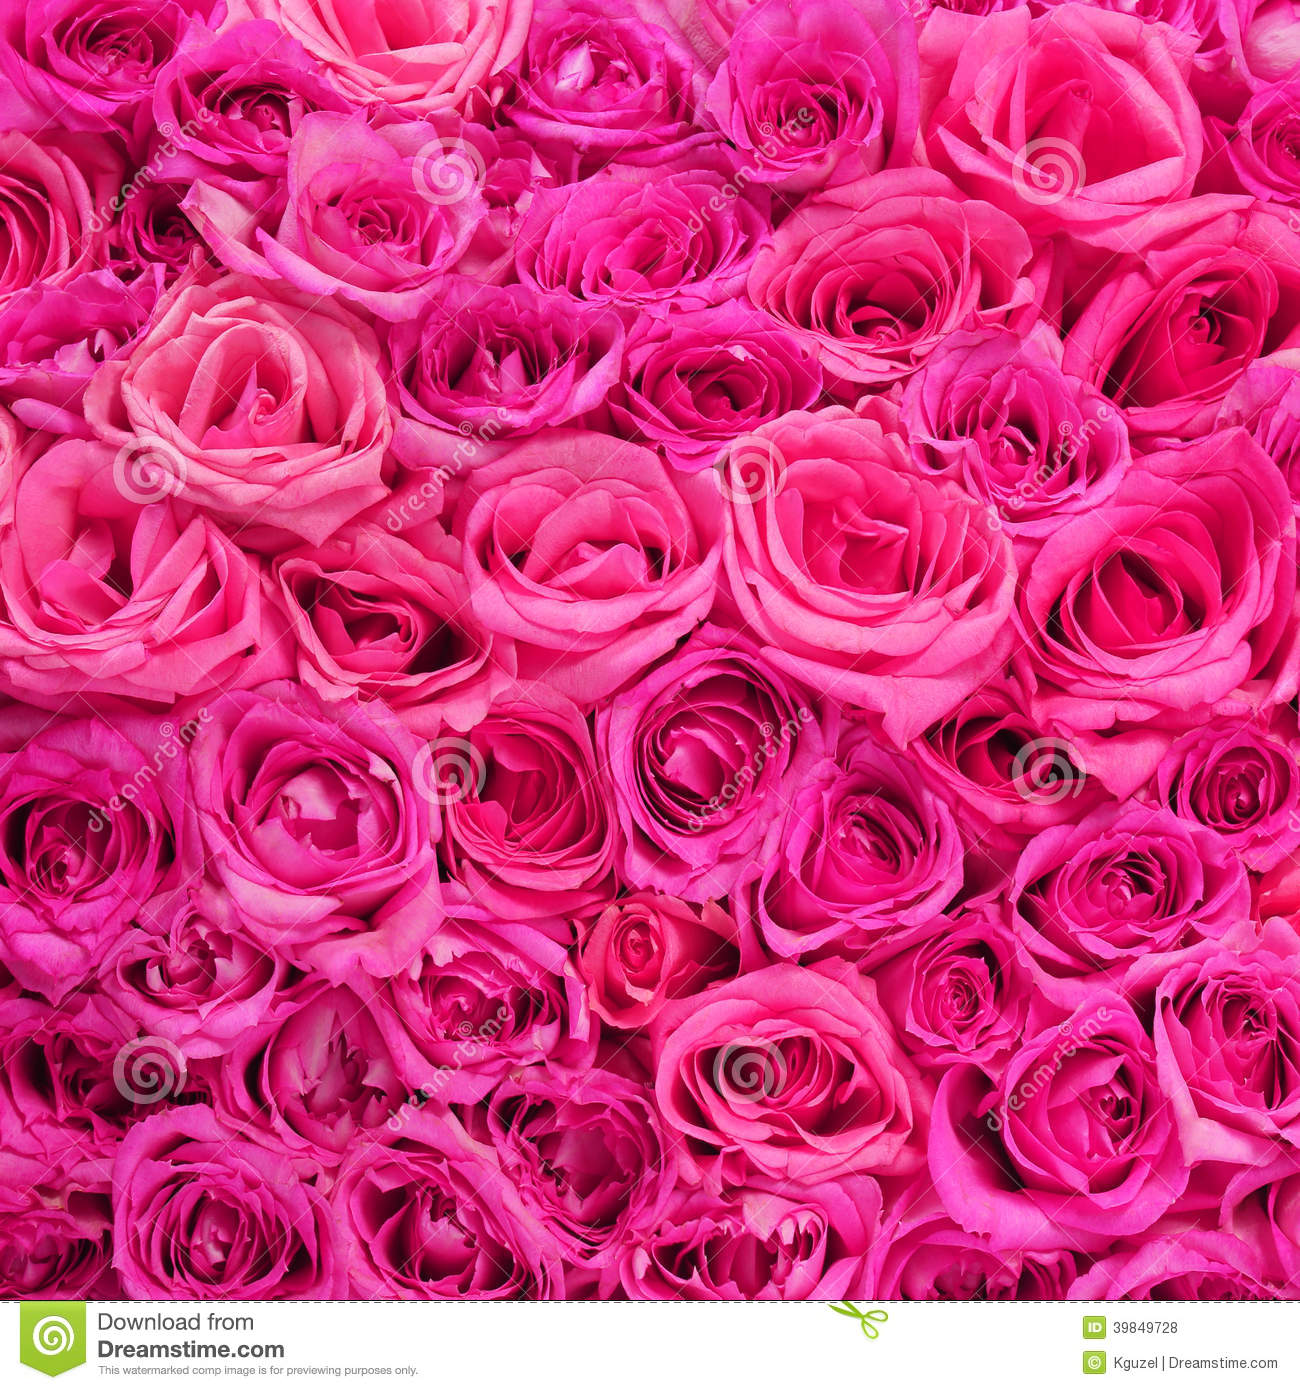 Images Of Hot Pink Flowers Background Spacehero